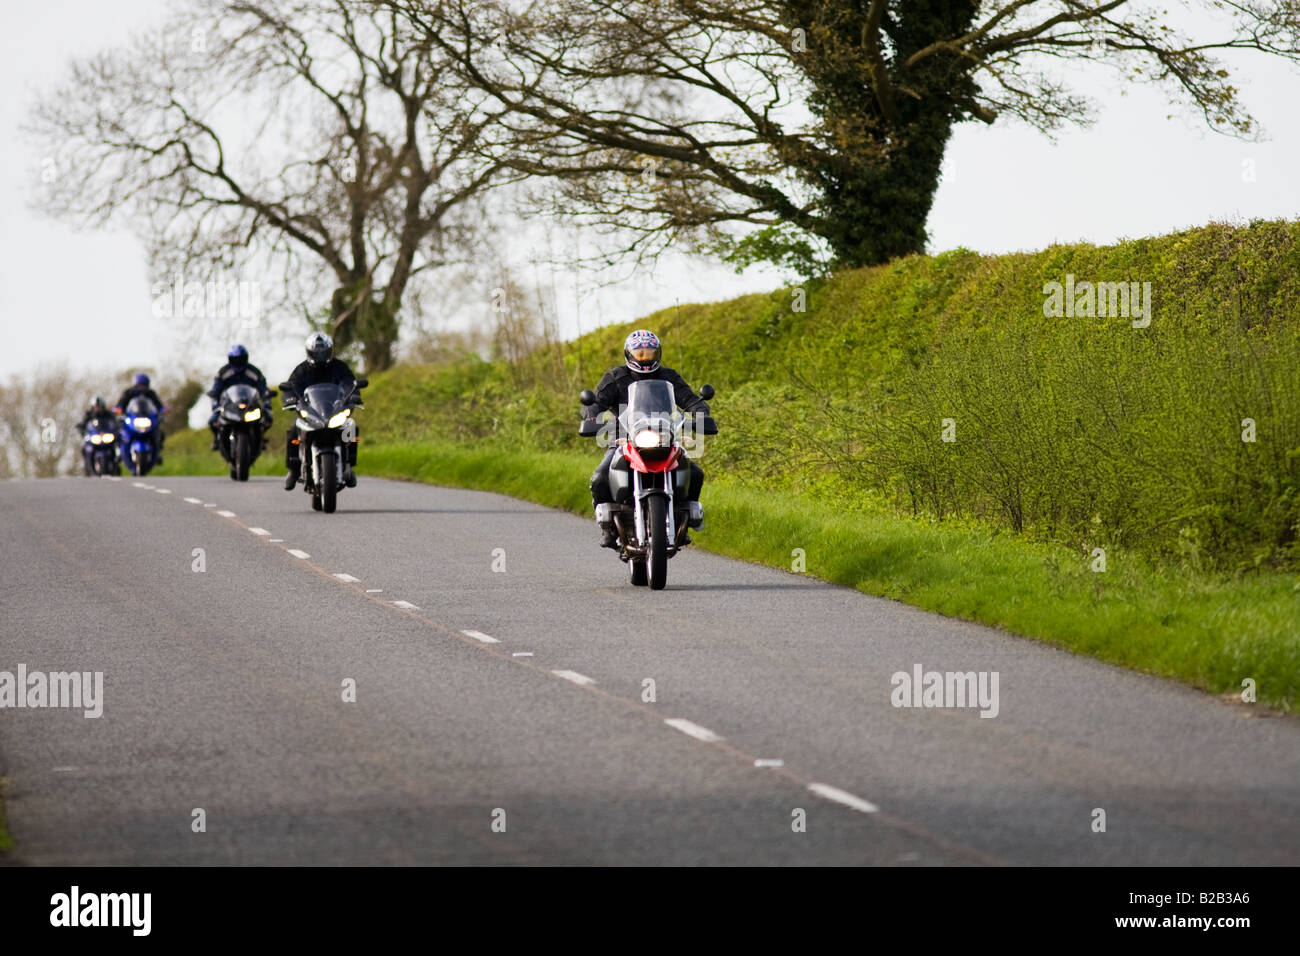 Motorcyclists on country road Stow On The Wold Oxfordshire United Kingdom - Stock Image